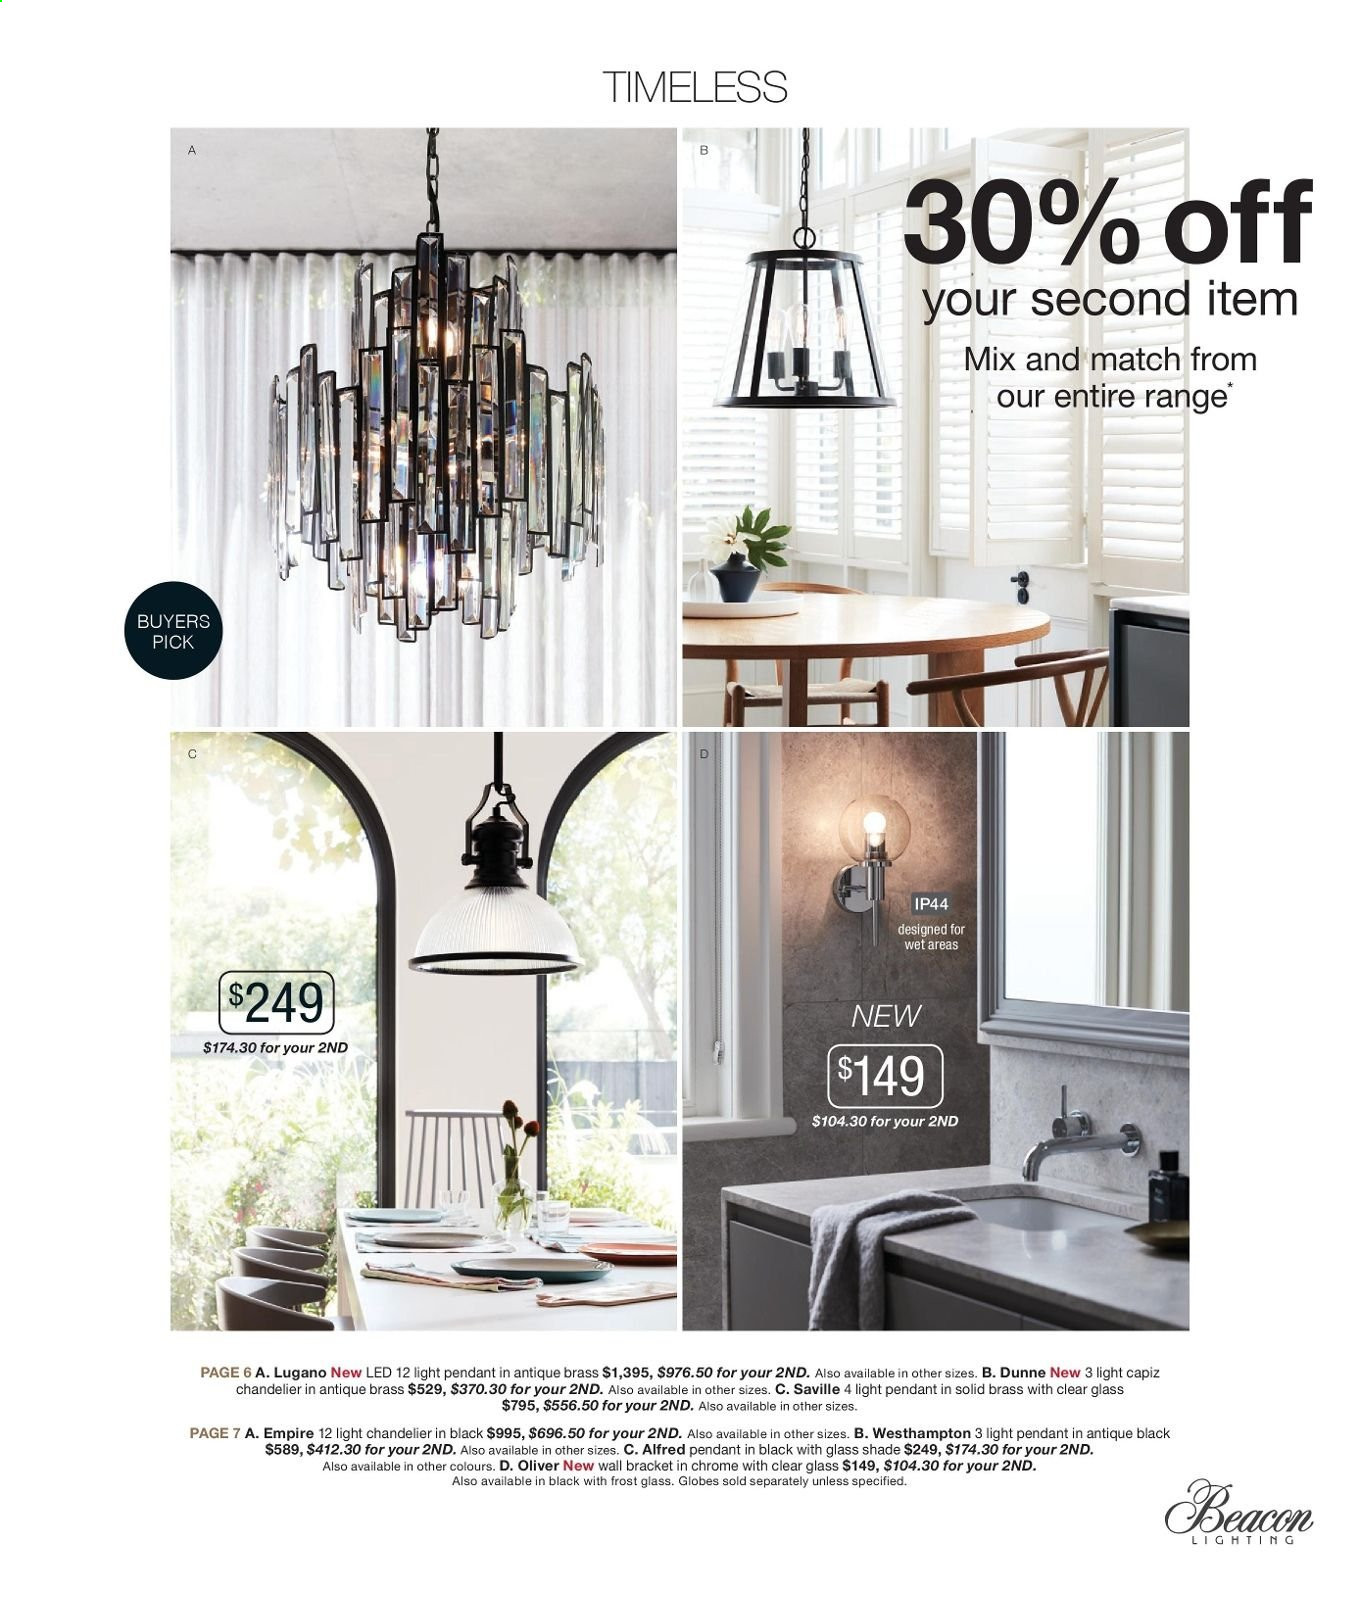 Beacon Lighting Catalogue And Weekly Specials 1 10 2019